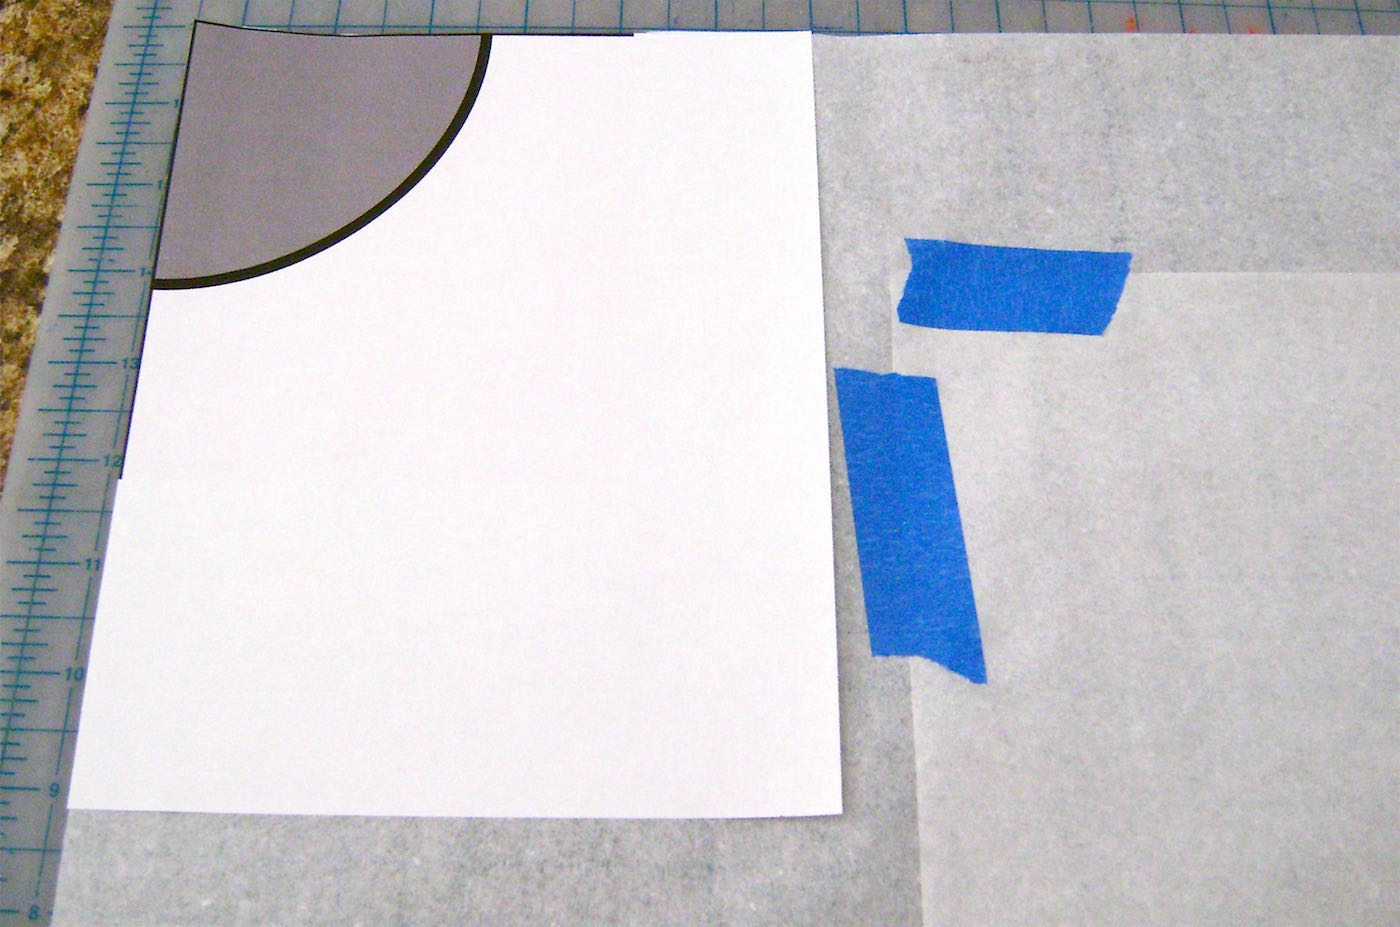 step 2 - Download and print out the quarter circle template. Match the corner of the template with the corner of the paper square.